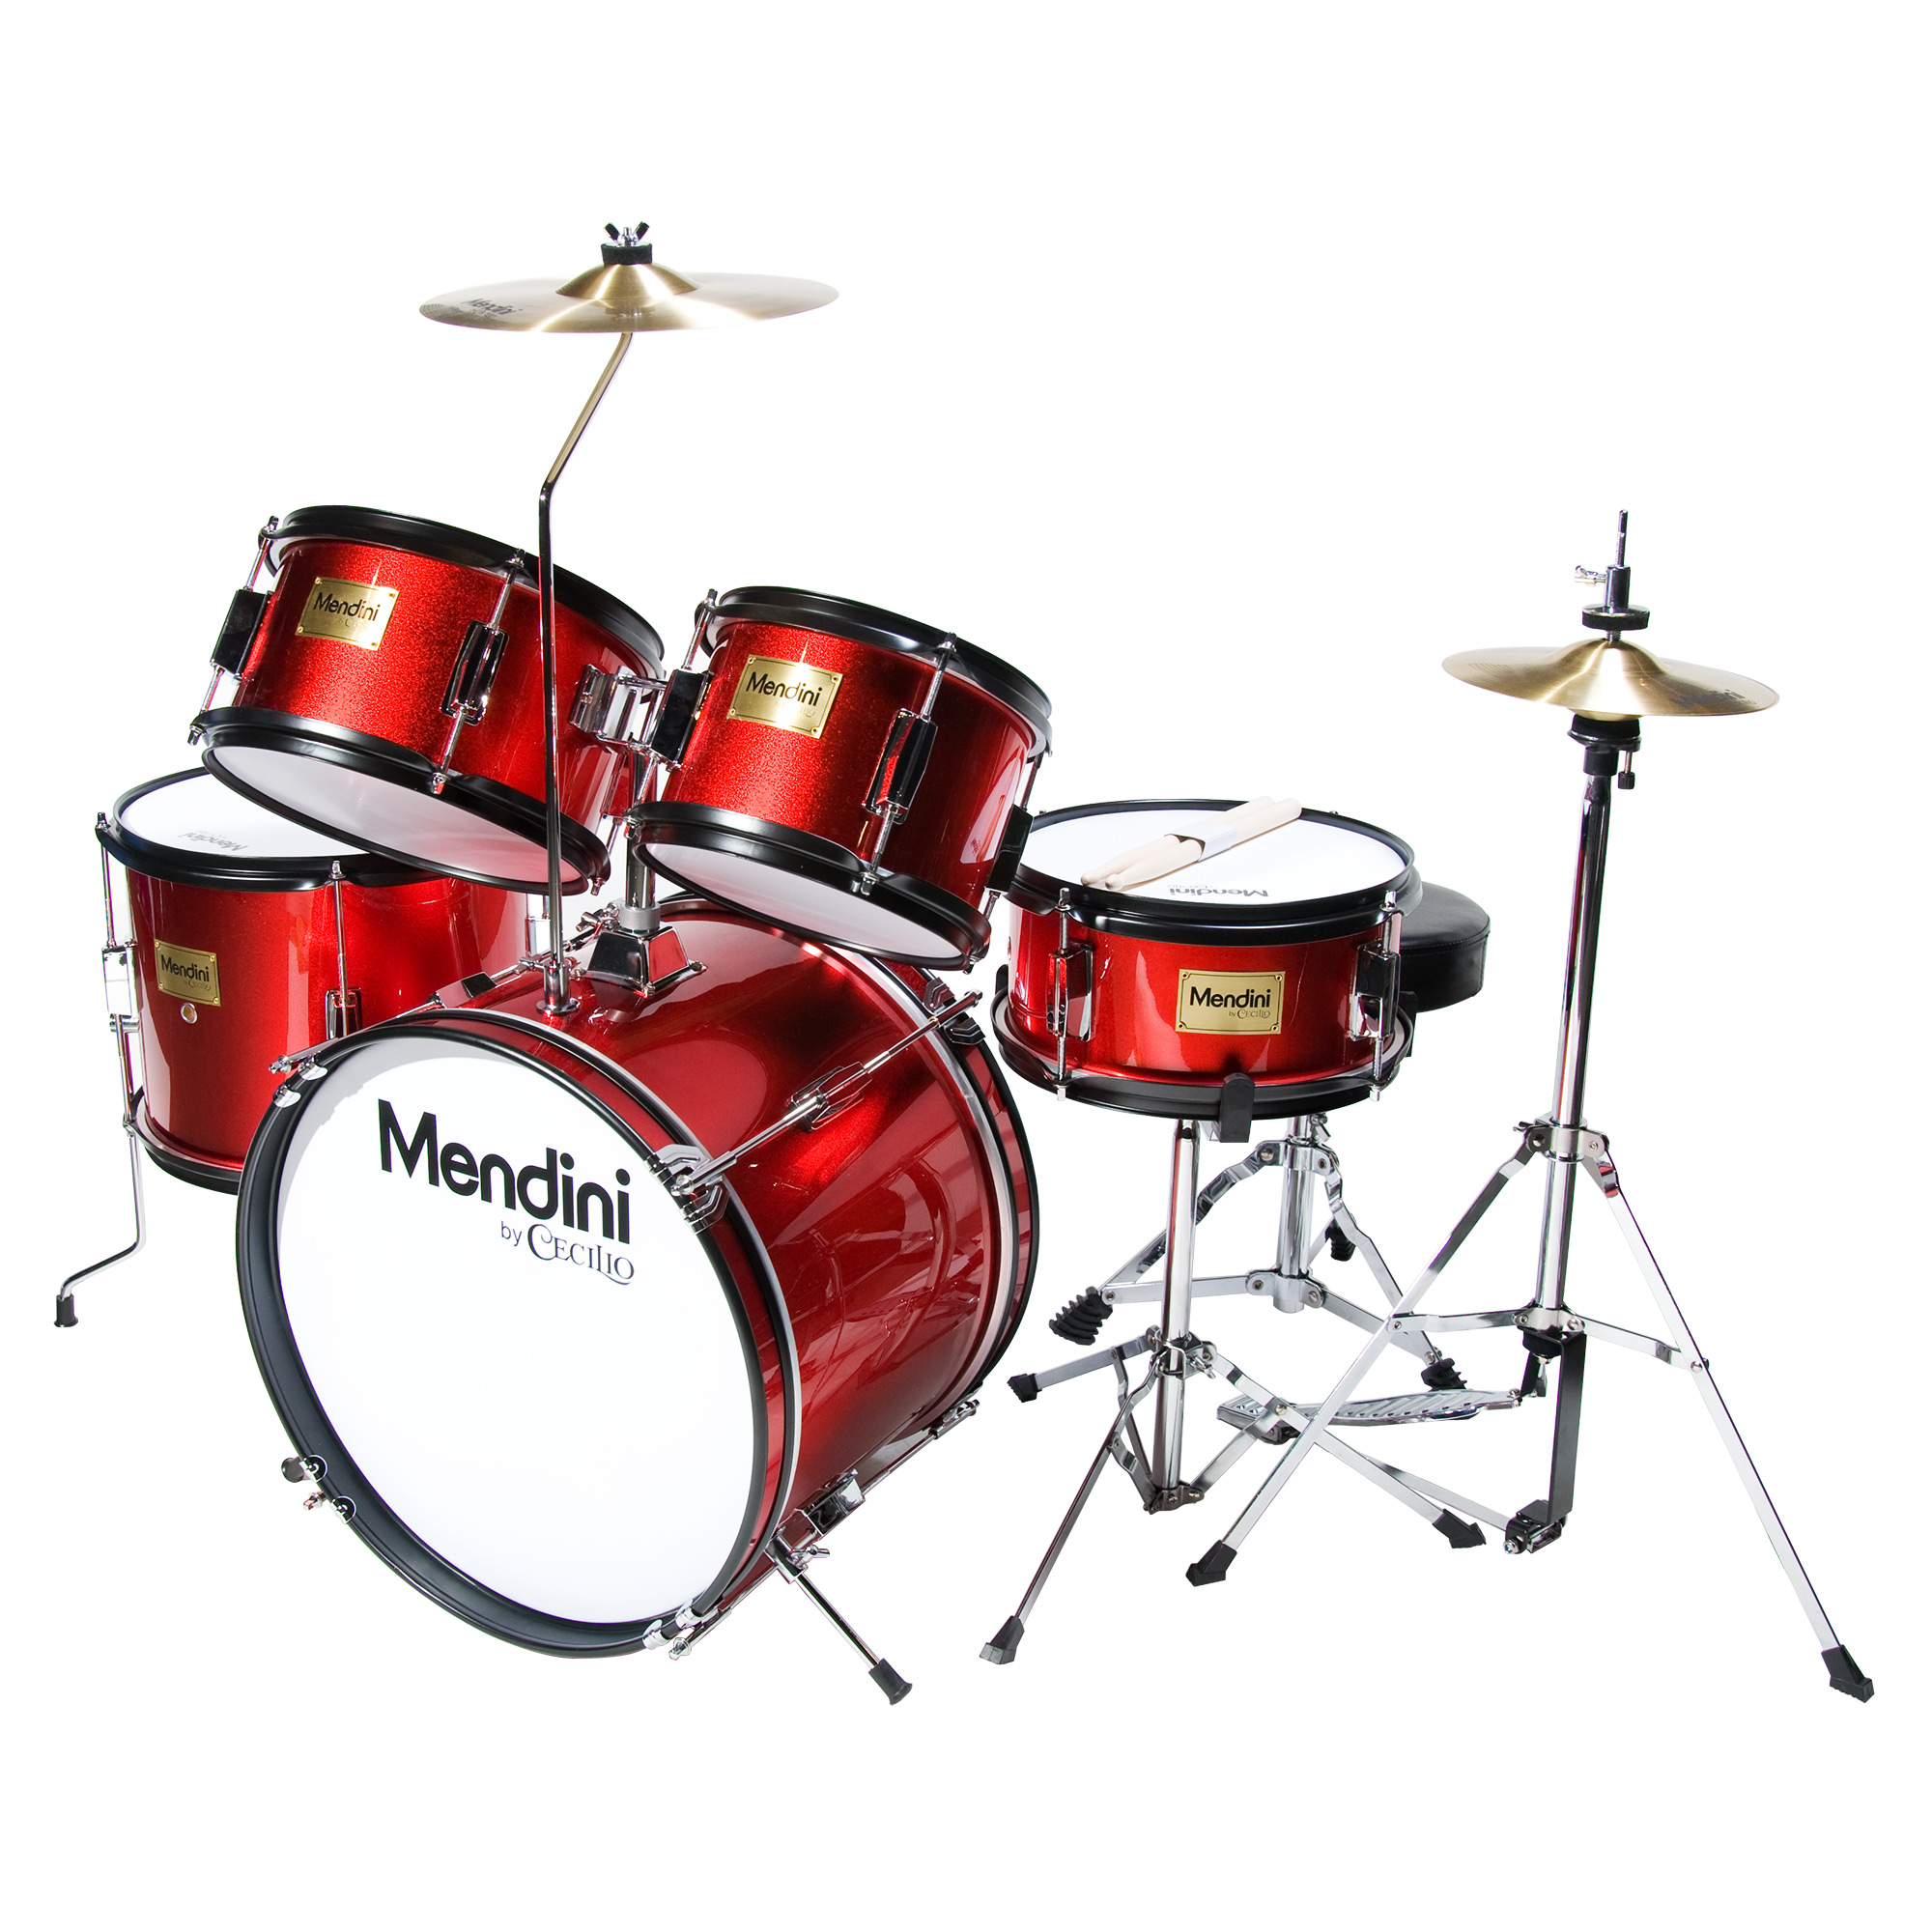 "Mendini by Cecilio 16"" 5-Piece Complete Kids / Junior Drum Set with Adjustable Throne, Cymbal, Pedal & Drumsticks, Metallic Bright Red, MJDS-5-BR"